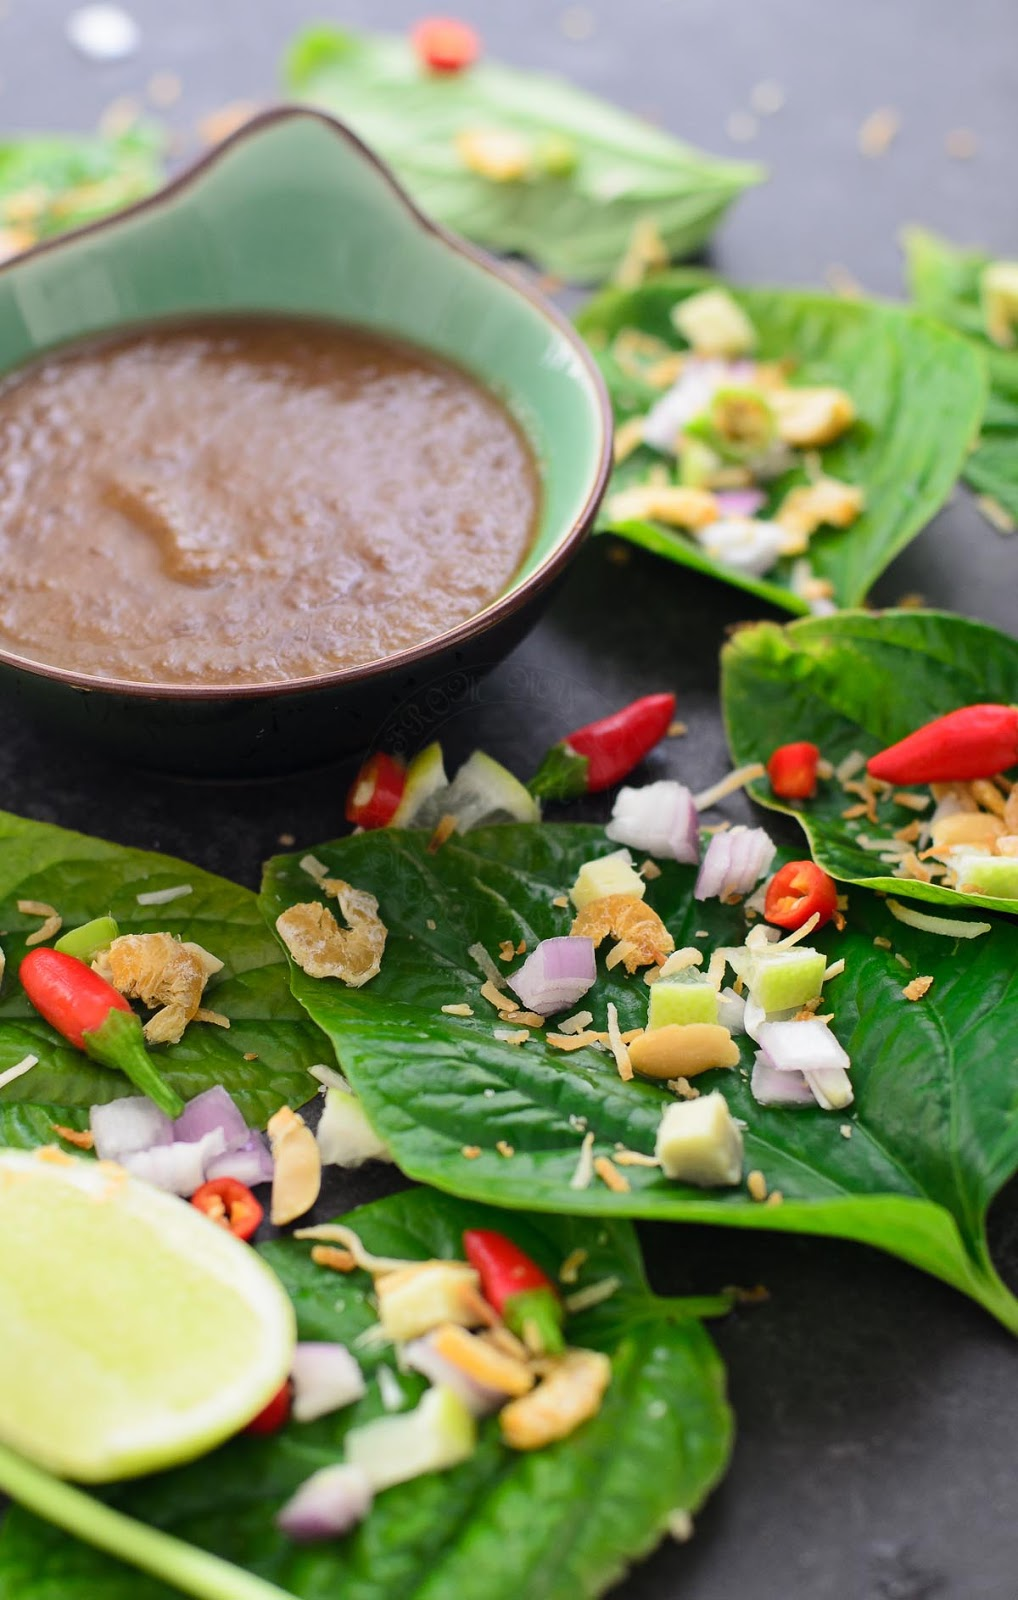 Miang Kham or Thai leaf wrap salad bite